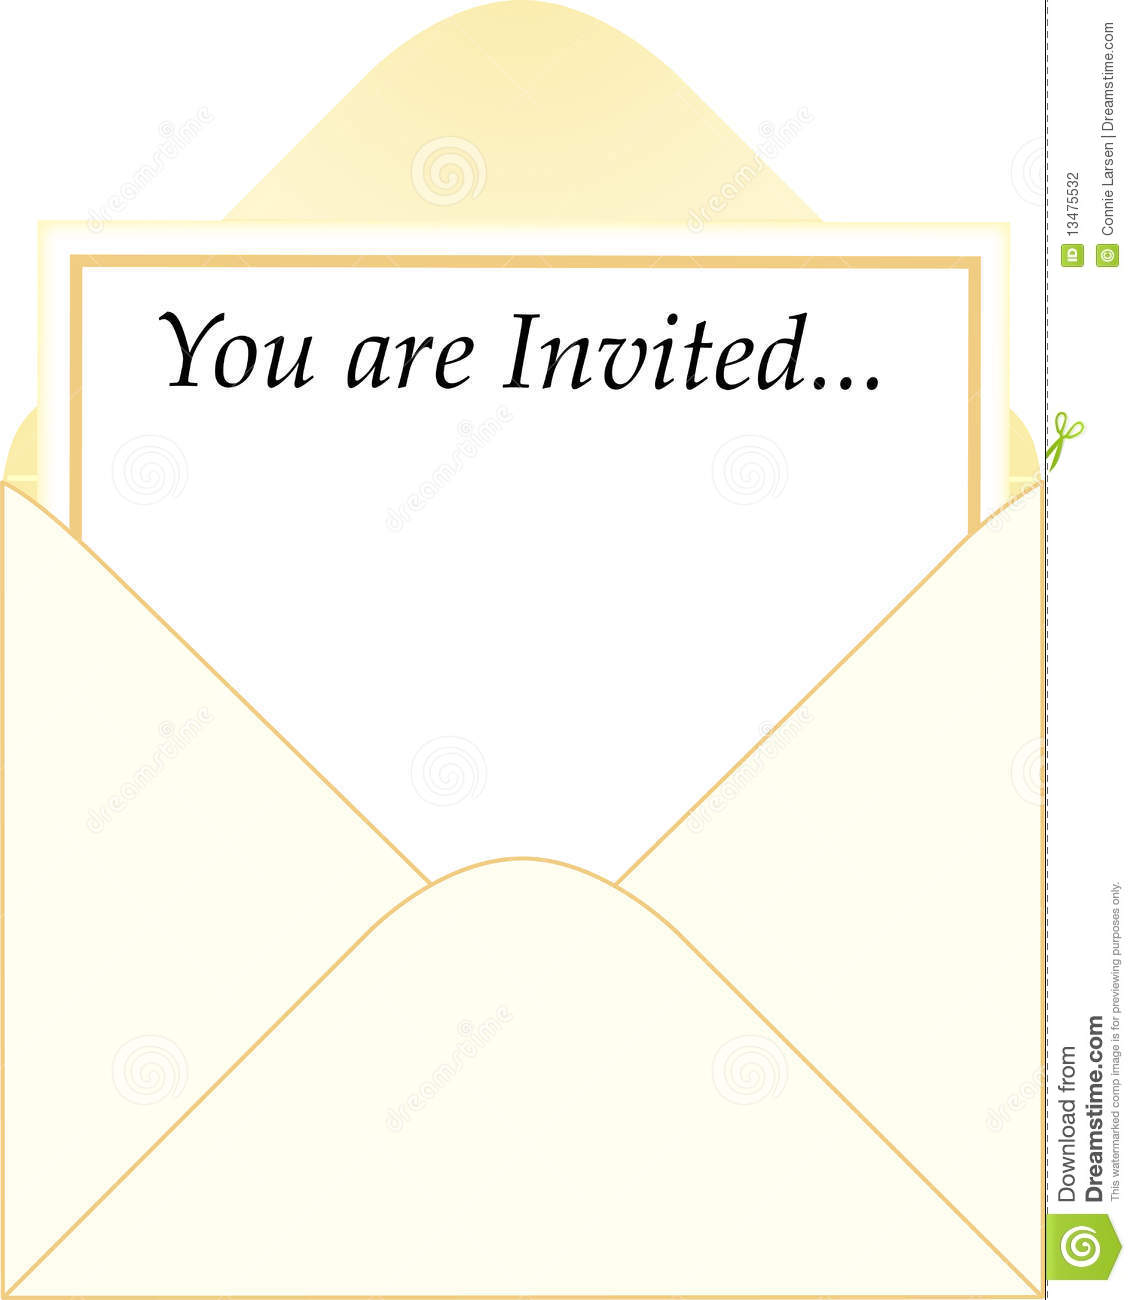 Invitation Cocktail Party for awesome invitations template